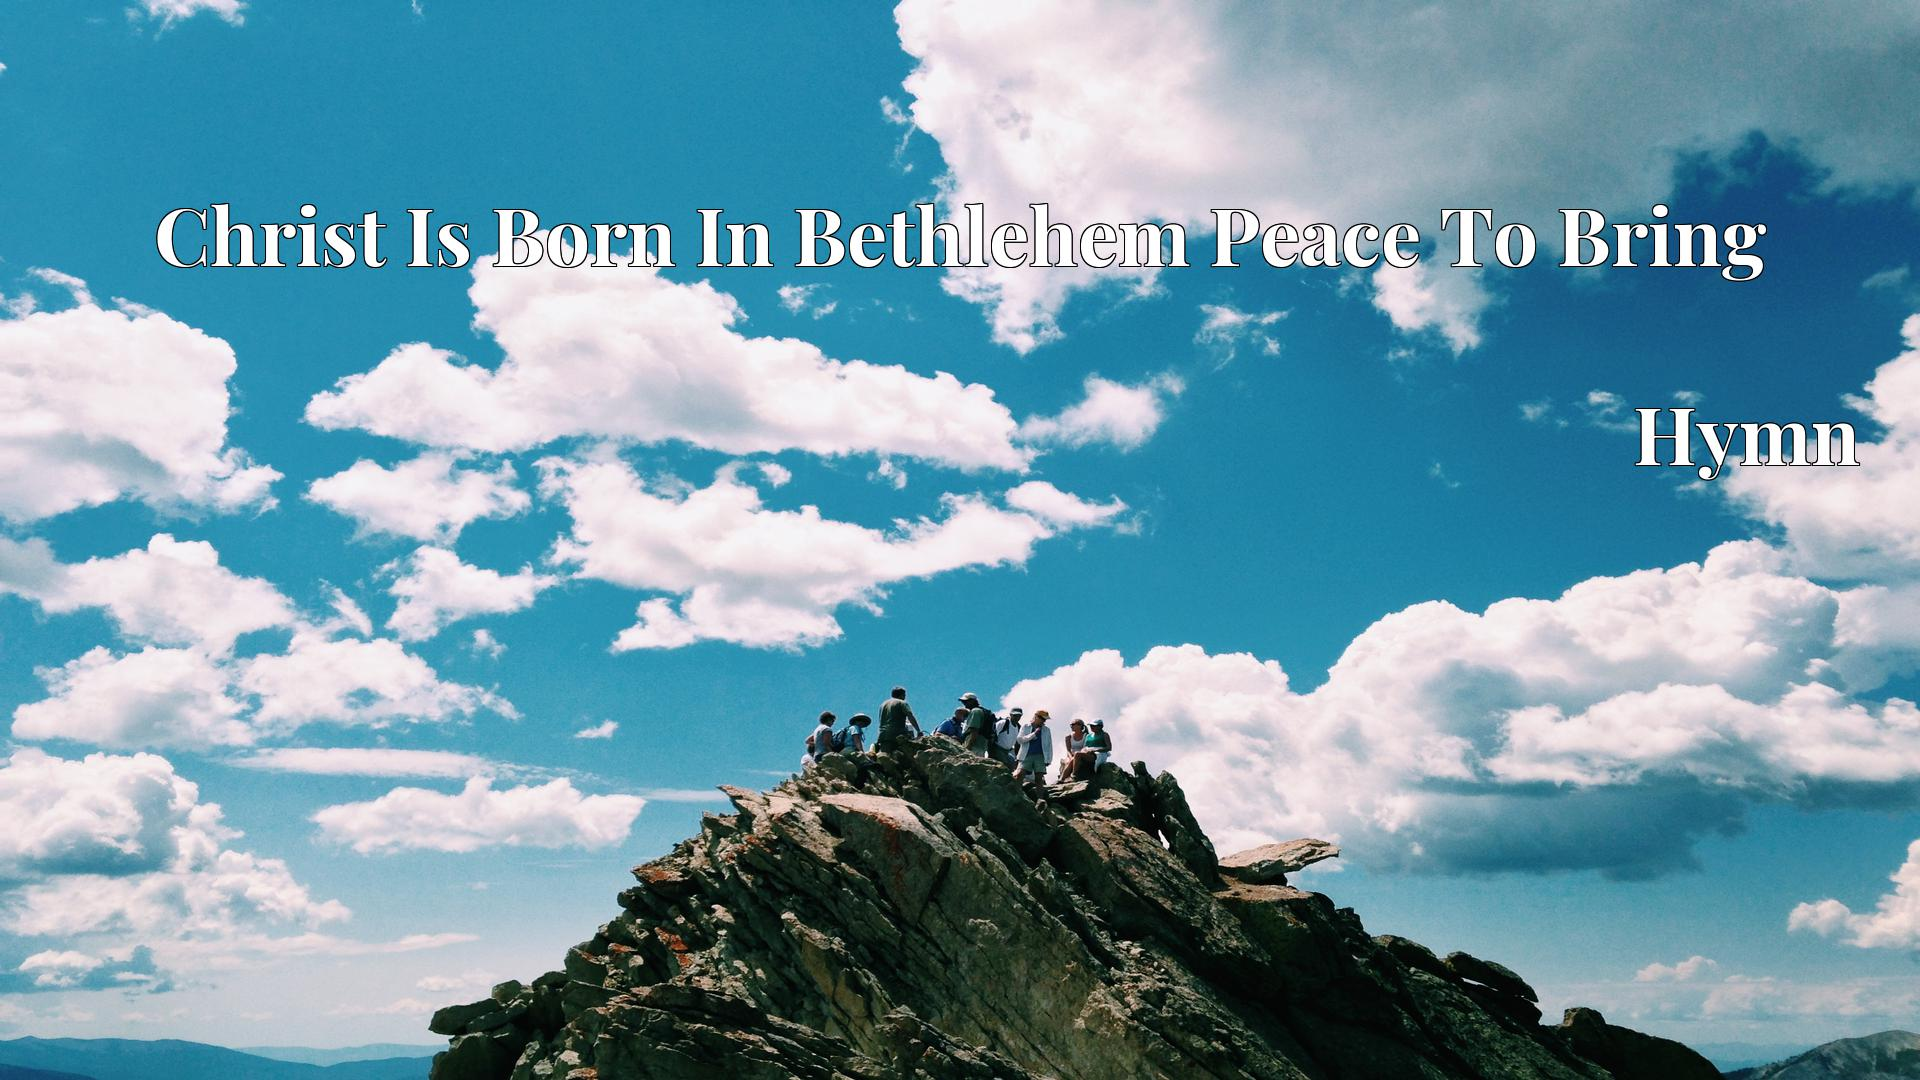 Christ Is Born In Bethlehem Peace To Bring - Hymn